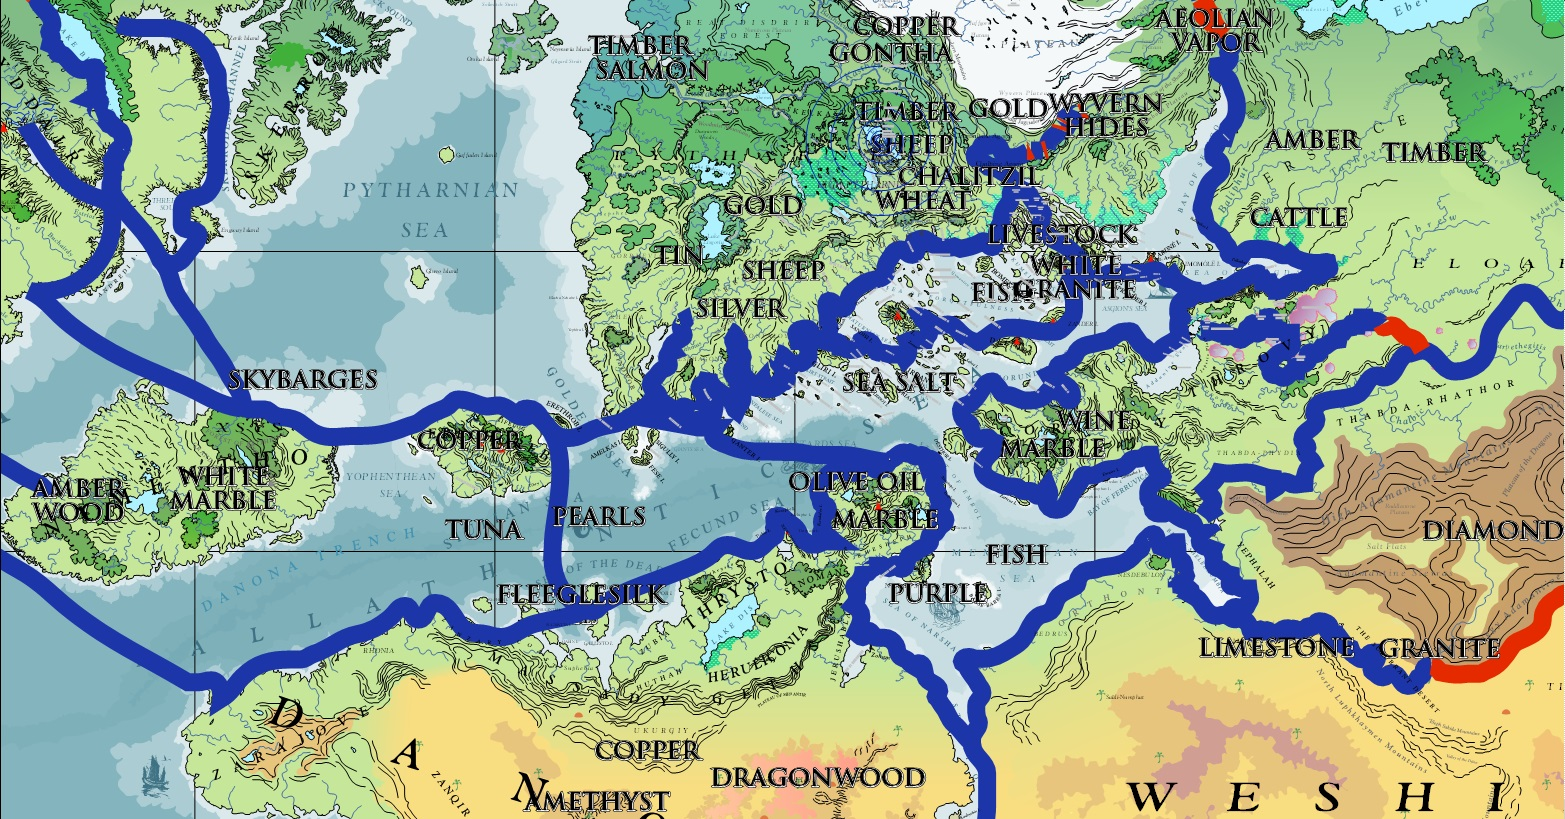 Blue lines represent sea routes, while red lines represent overland routes.  